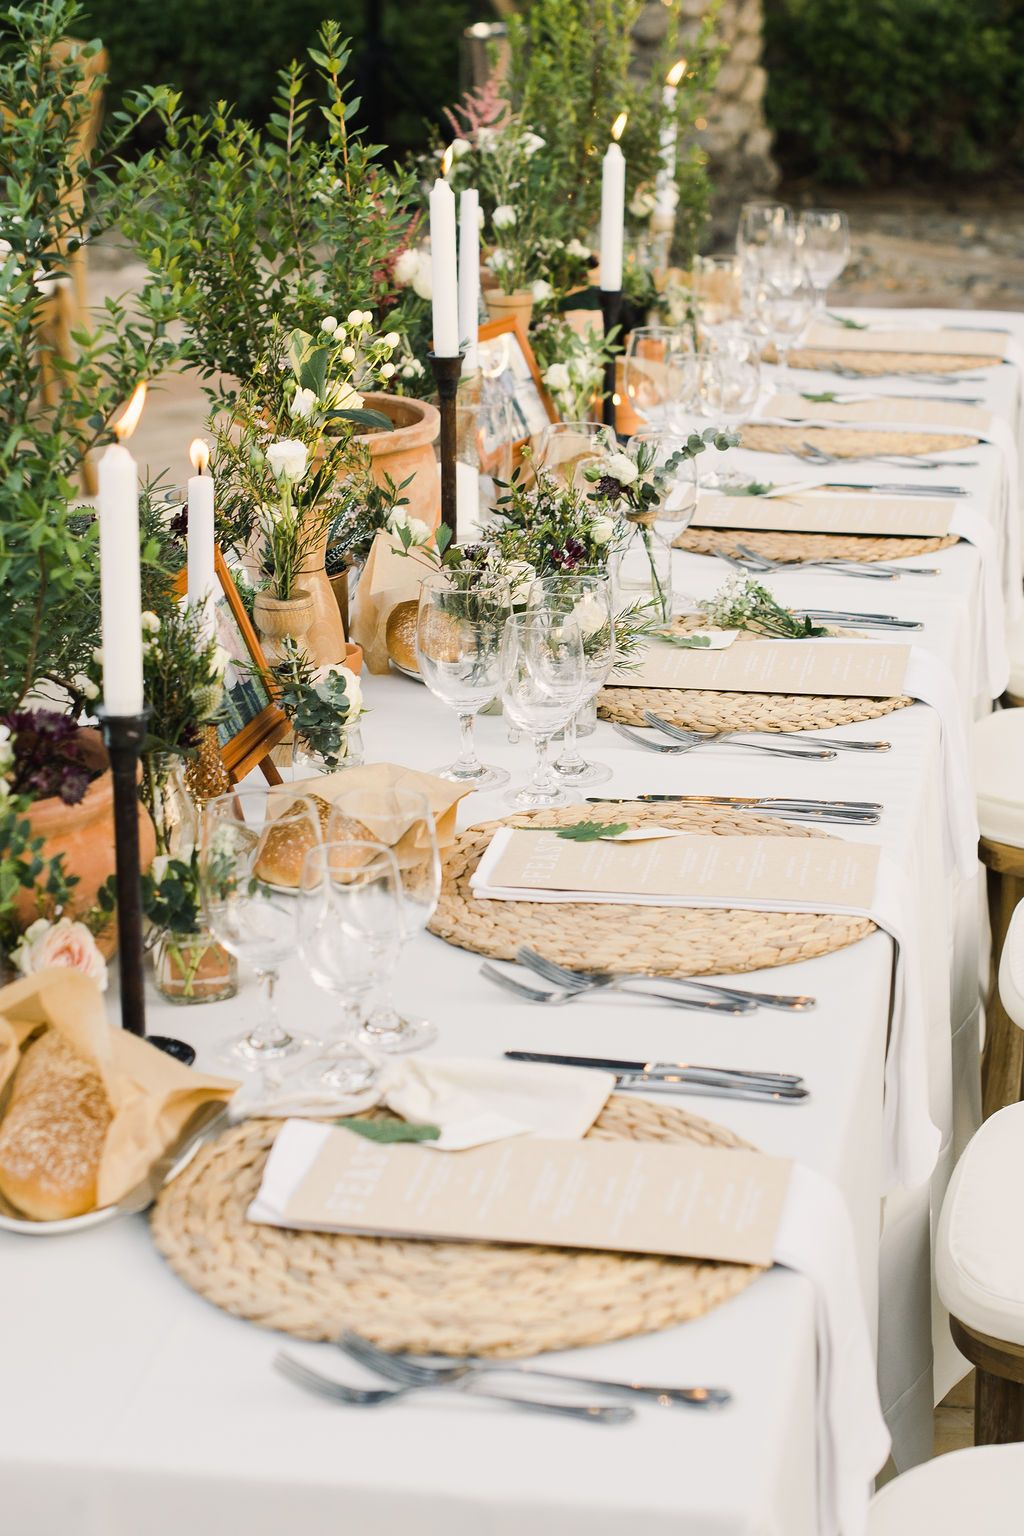 Wicker Place Mats And Kraft Paper Menus For A Garden Style Wedding In Dubai Rustic Wedding Table Setting Country Barn Weddings Outdoor Tent Wedding